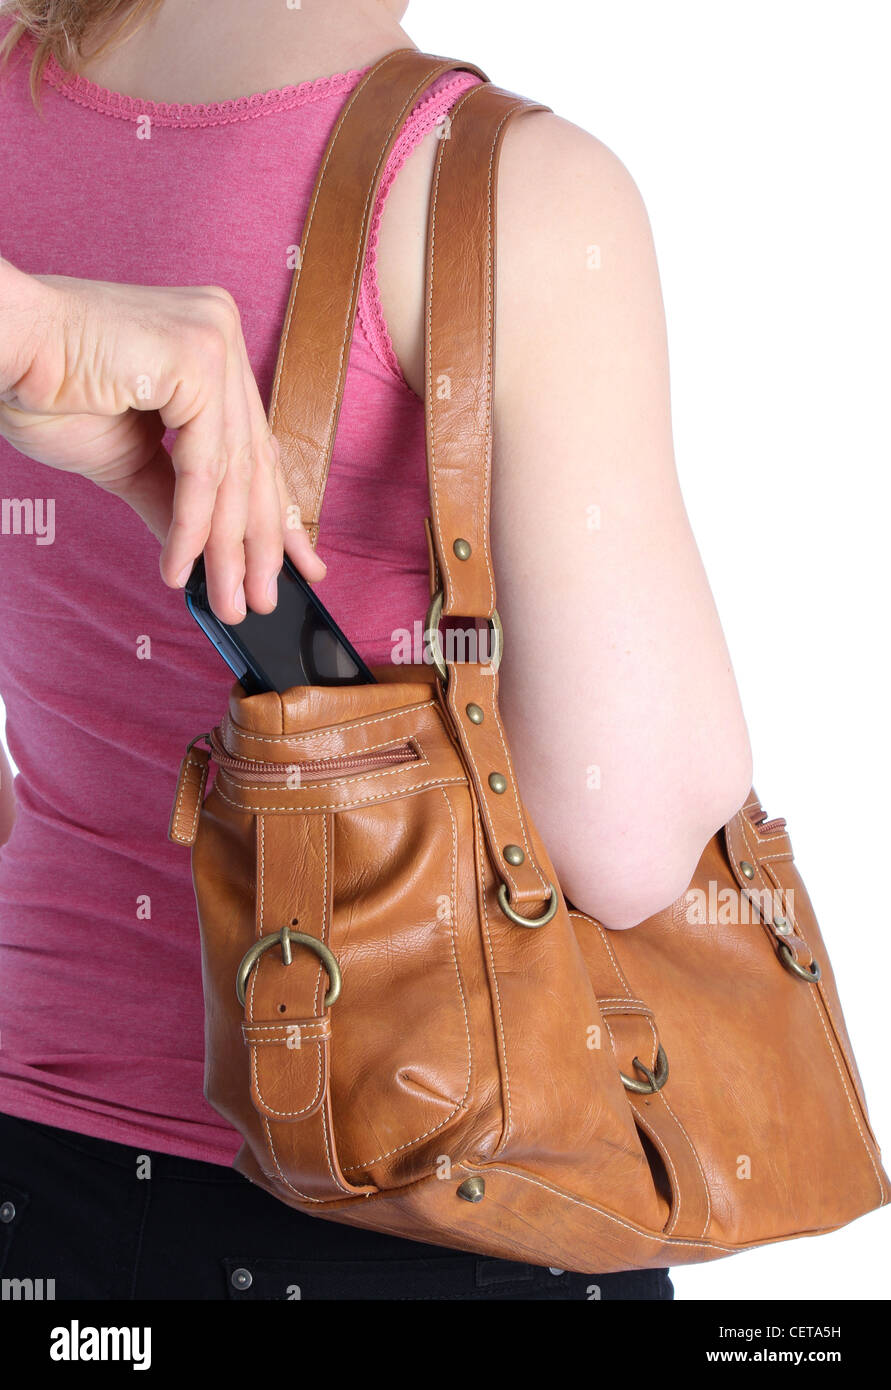 Pickpocketing a mobile out of a handbag of a woman - Stock Image